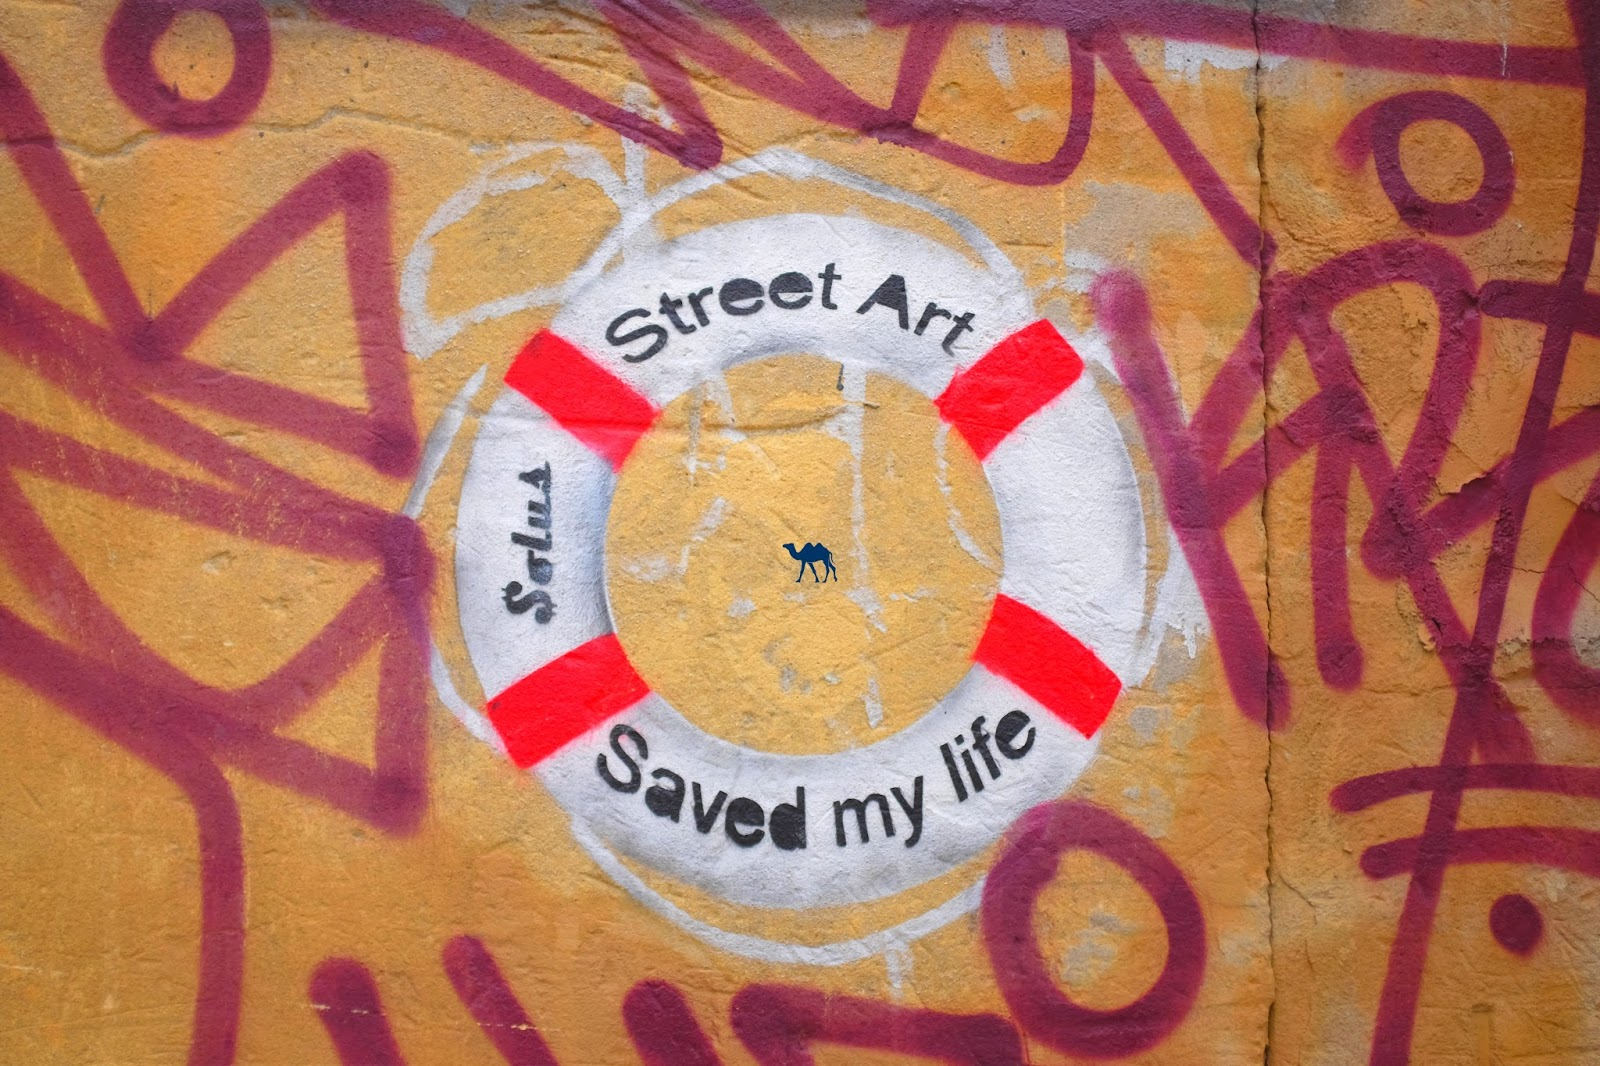 Street Art saved my life - Solus - Le Chameau Bleu